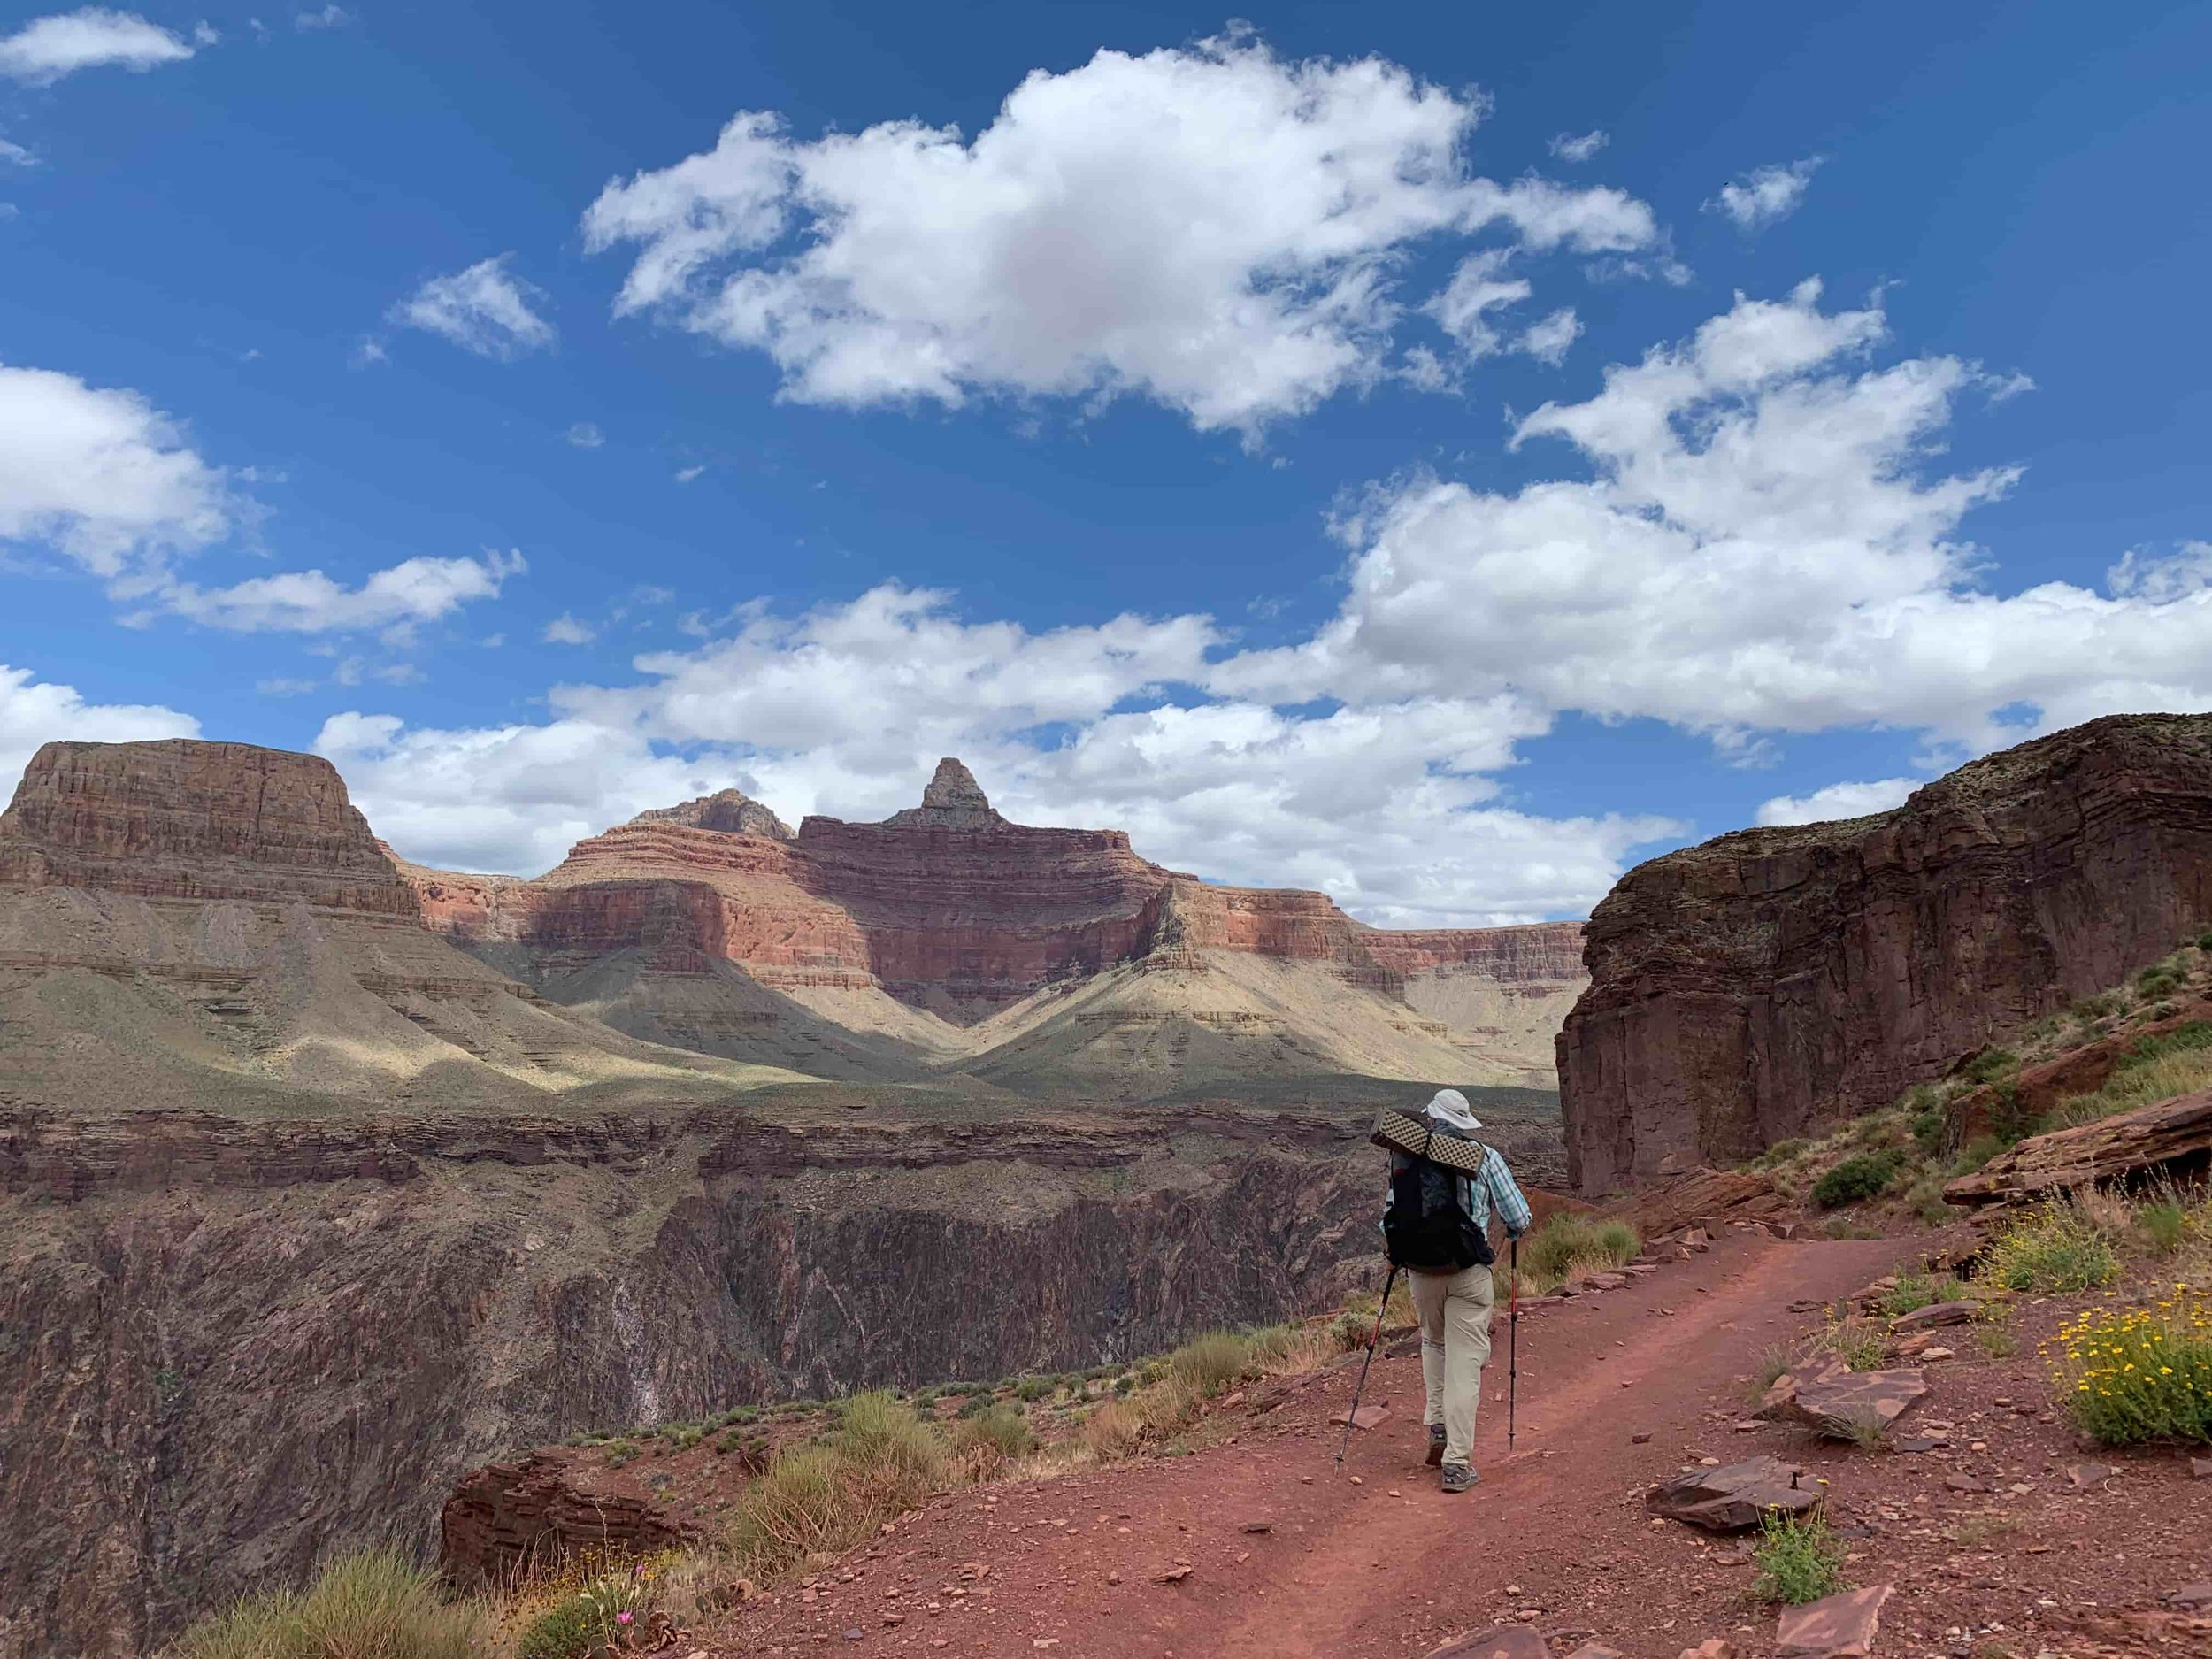 Our backpacking backpack writer Mike Unger in the Grand Canyon on the Arizona Trail. Photo courtesy Naomi Hudetz.